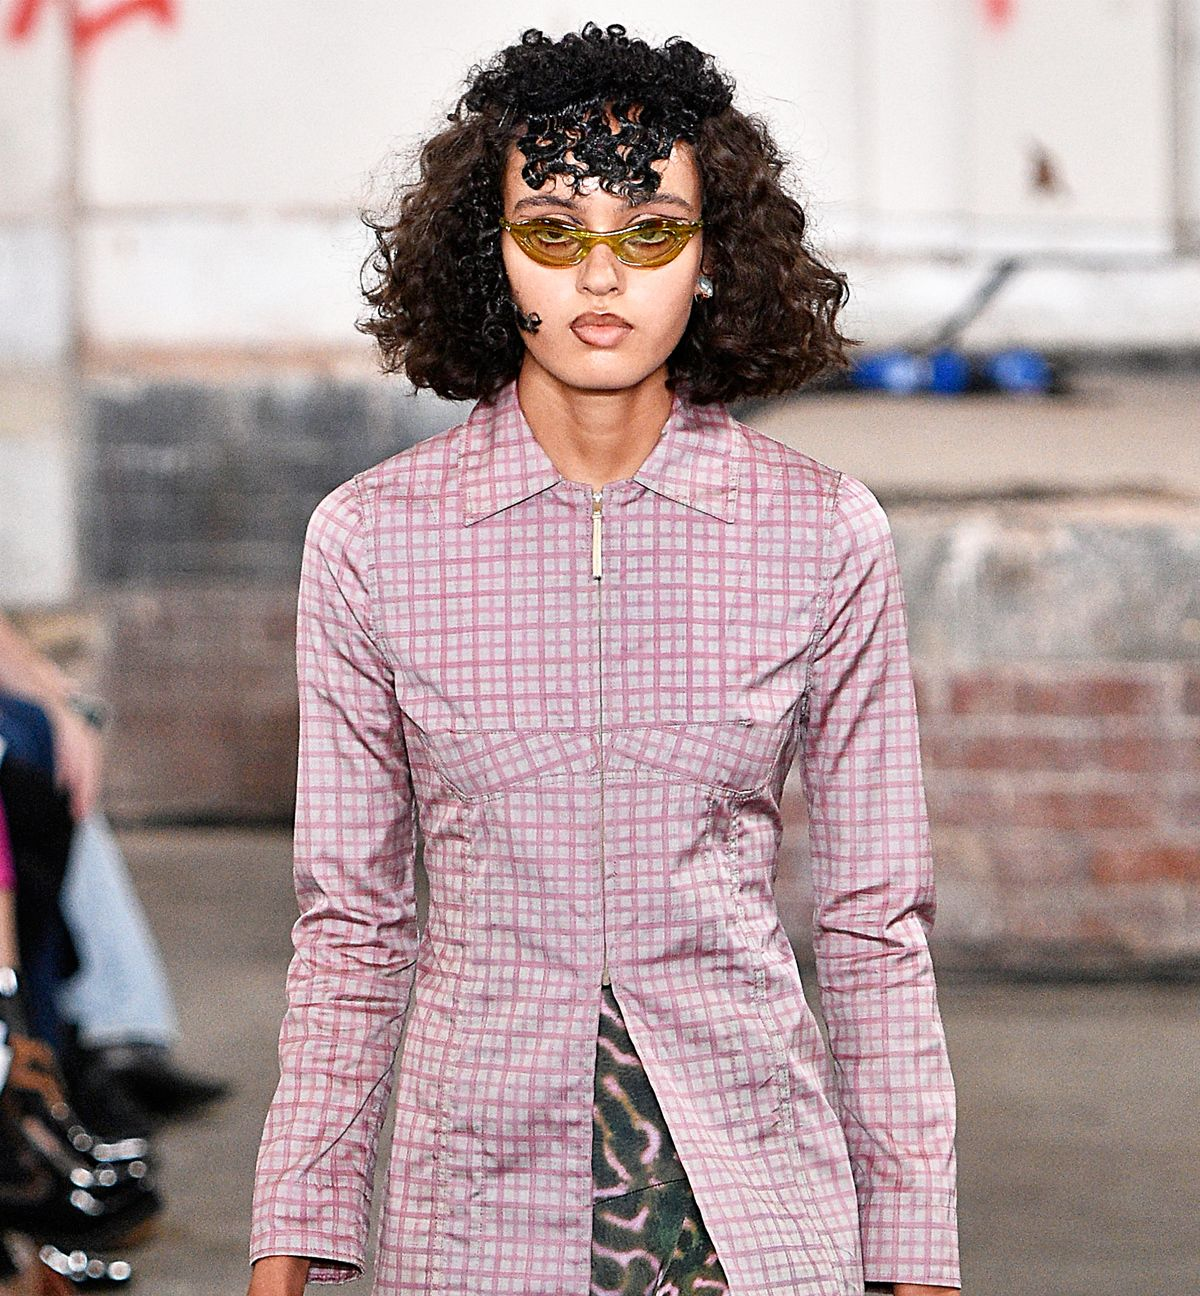 These Sunglasses Will Take Over Instagram Next Year